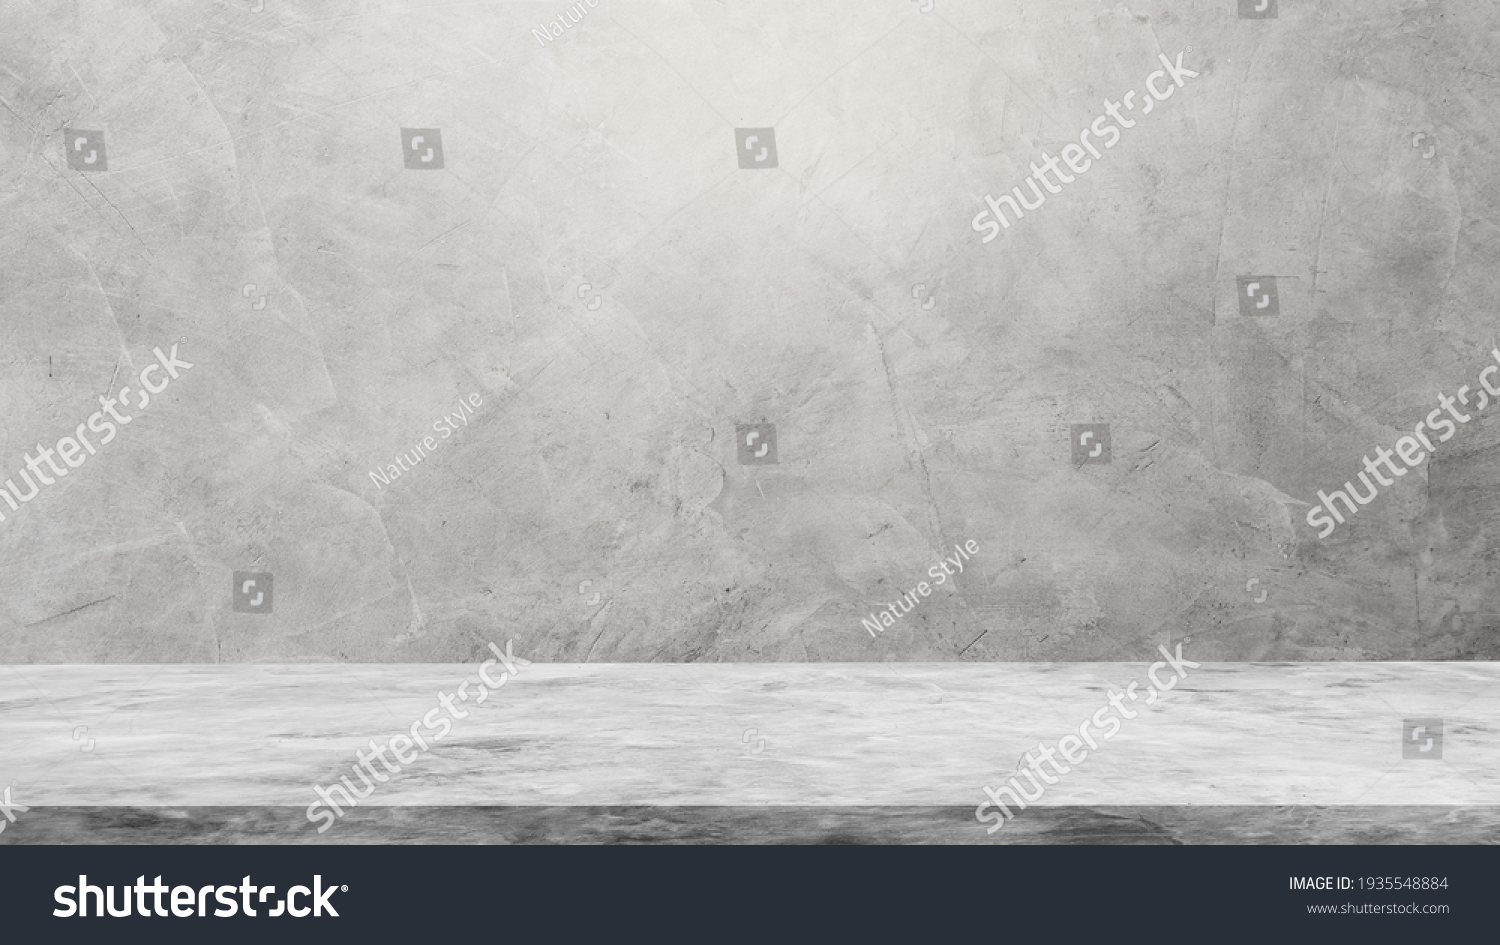 Empty Gray Wall Room interiors Studio Concrete Backdrop and Floor cement Shelf, well editing montage display products and text present on free space Background  #1935548884